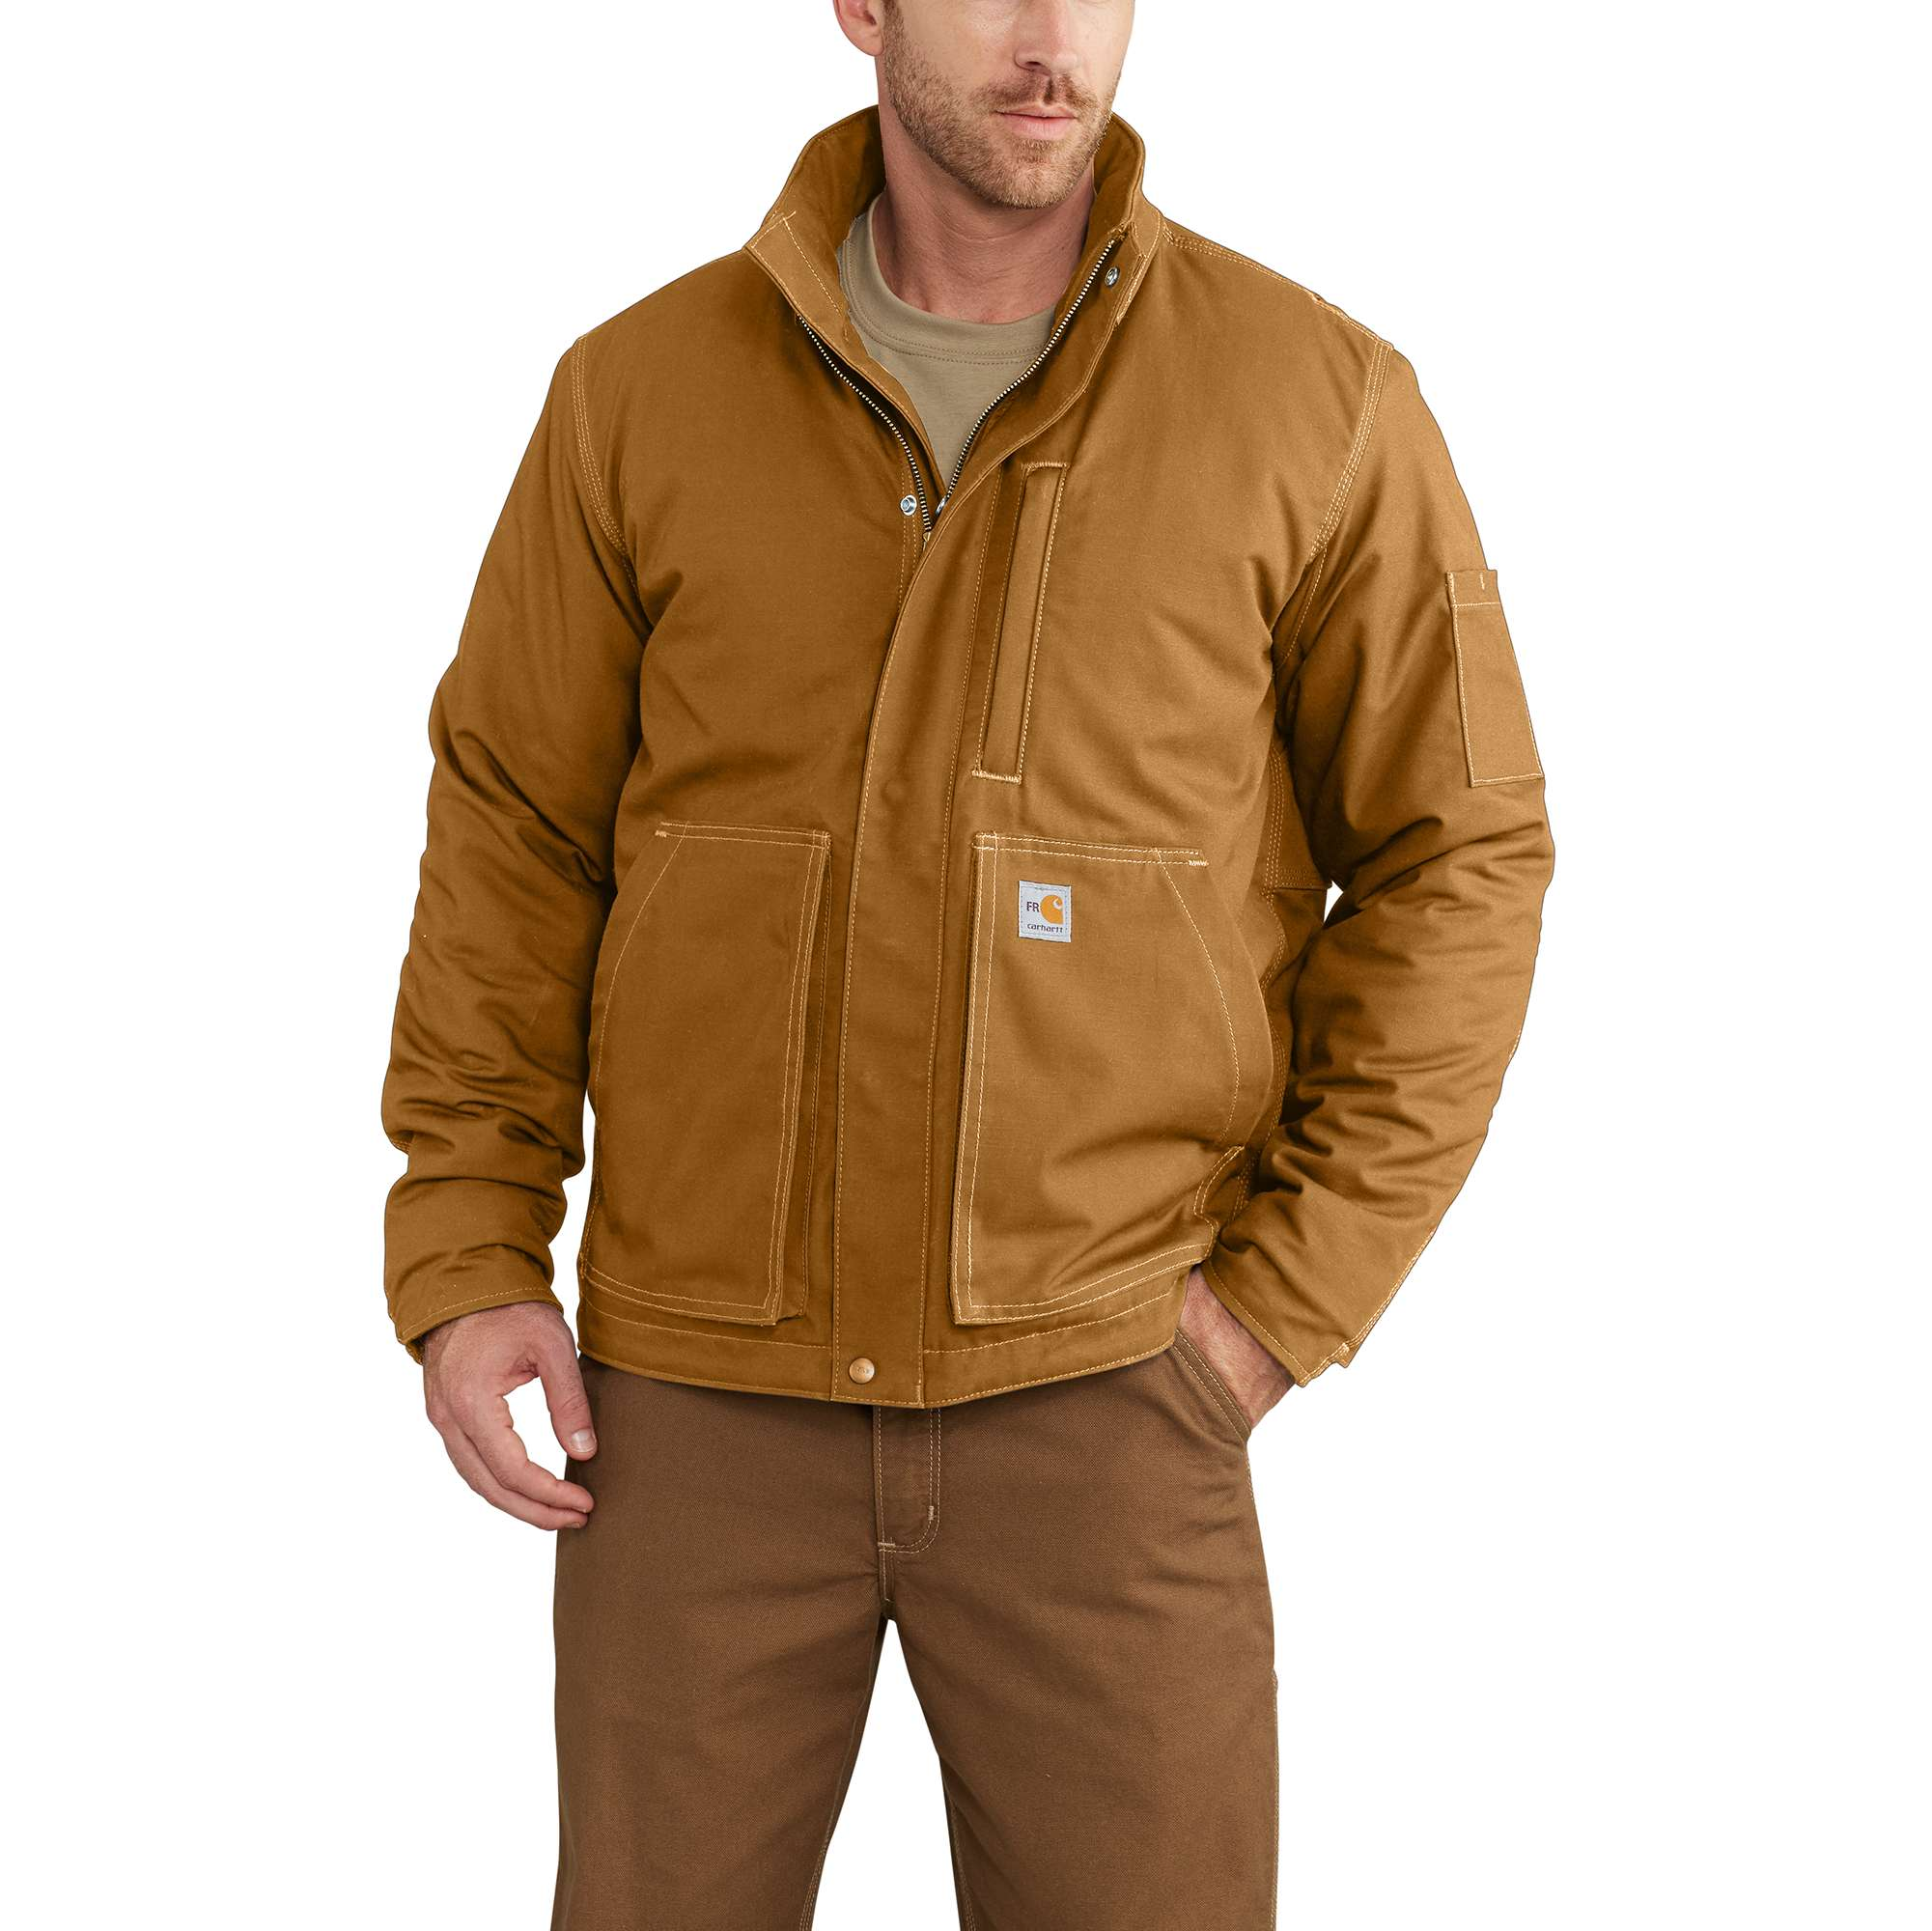 490cf613a0 Mens Flame-Resistant Full Swing Quick Duck Lanyard Jacket-Carhartt